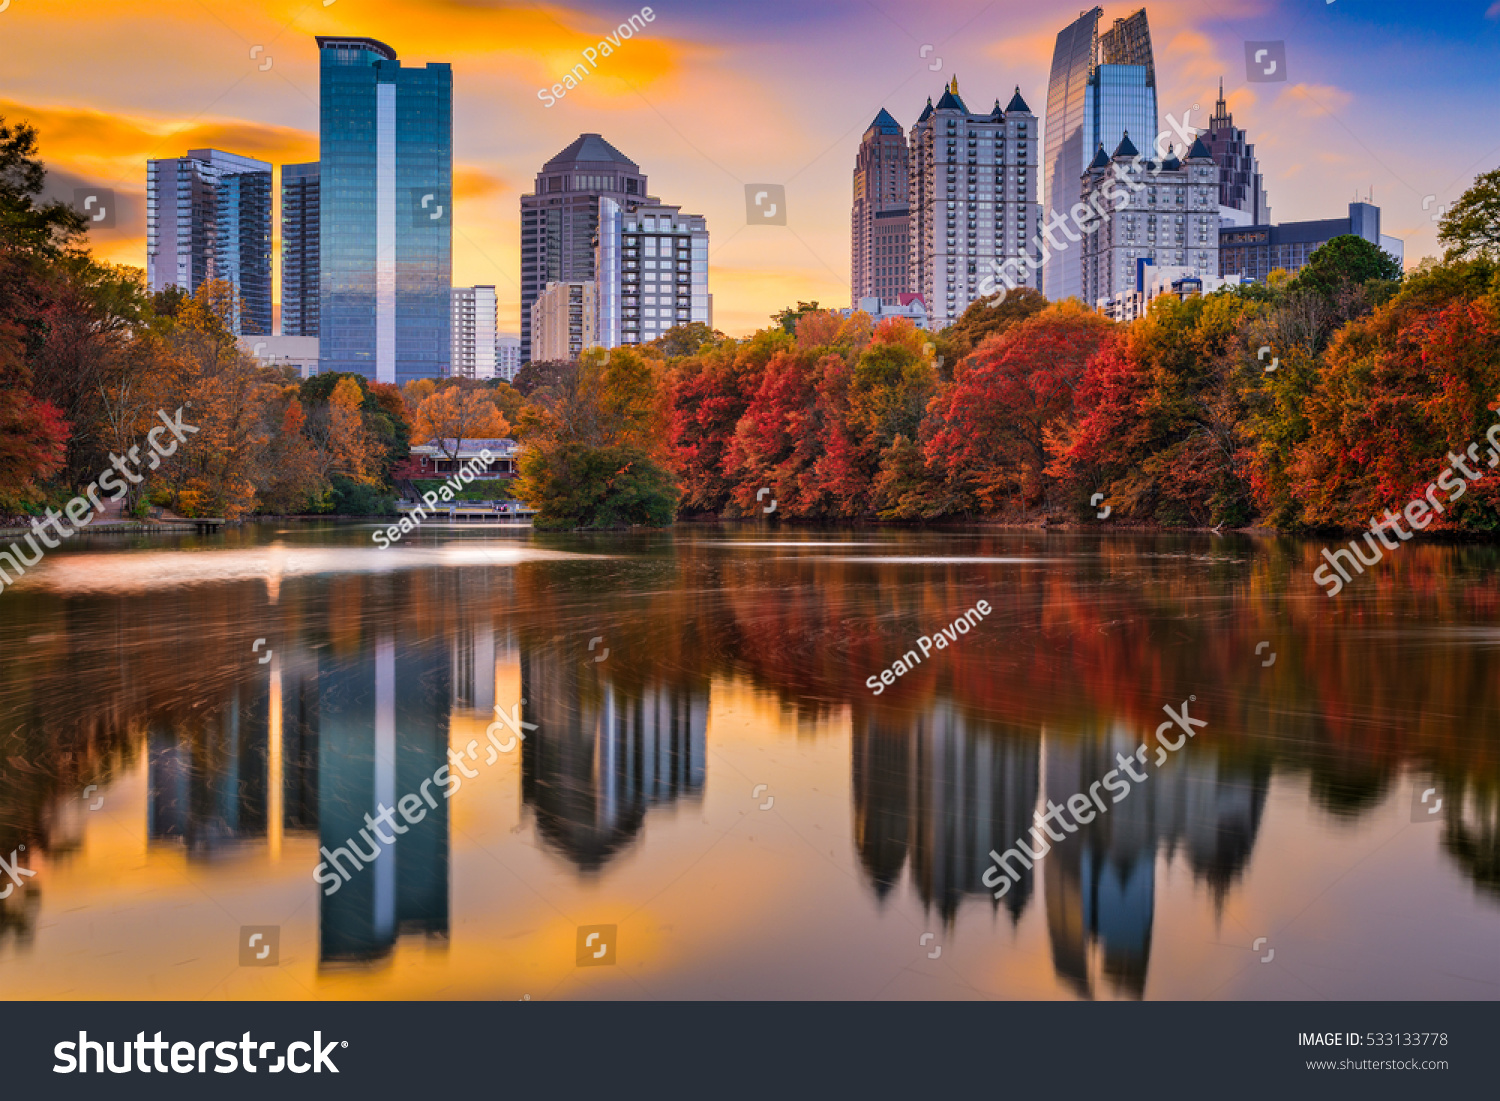 atlanta georgia usa piedmont park skyline stock photo 533133778 shutterstock. Black Bedroom Furniture Sets. Home Design Ideas